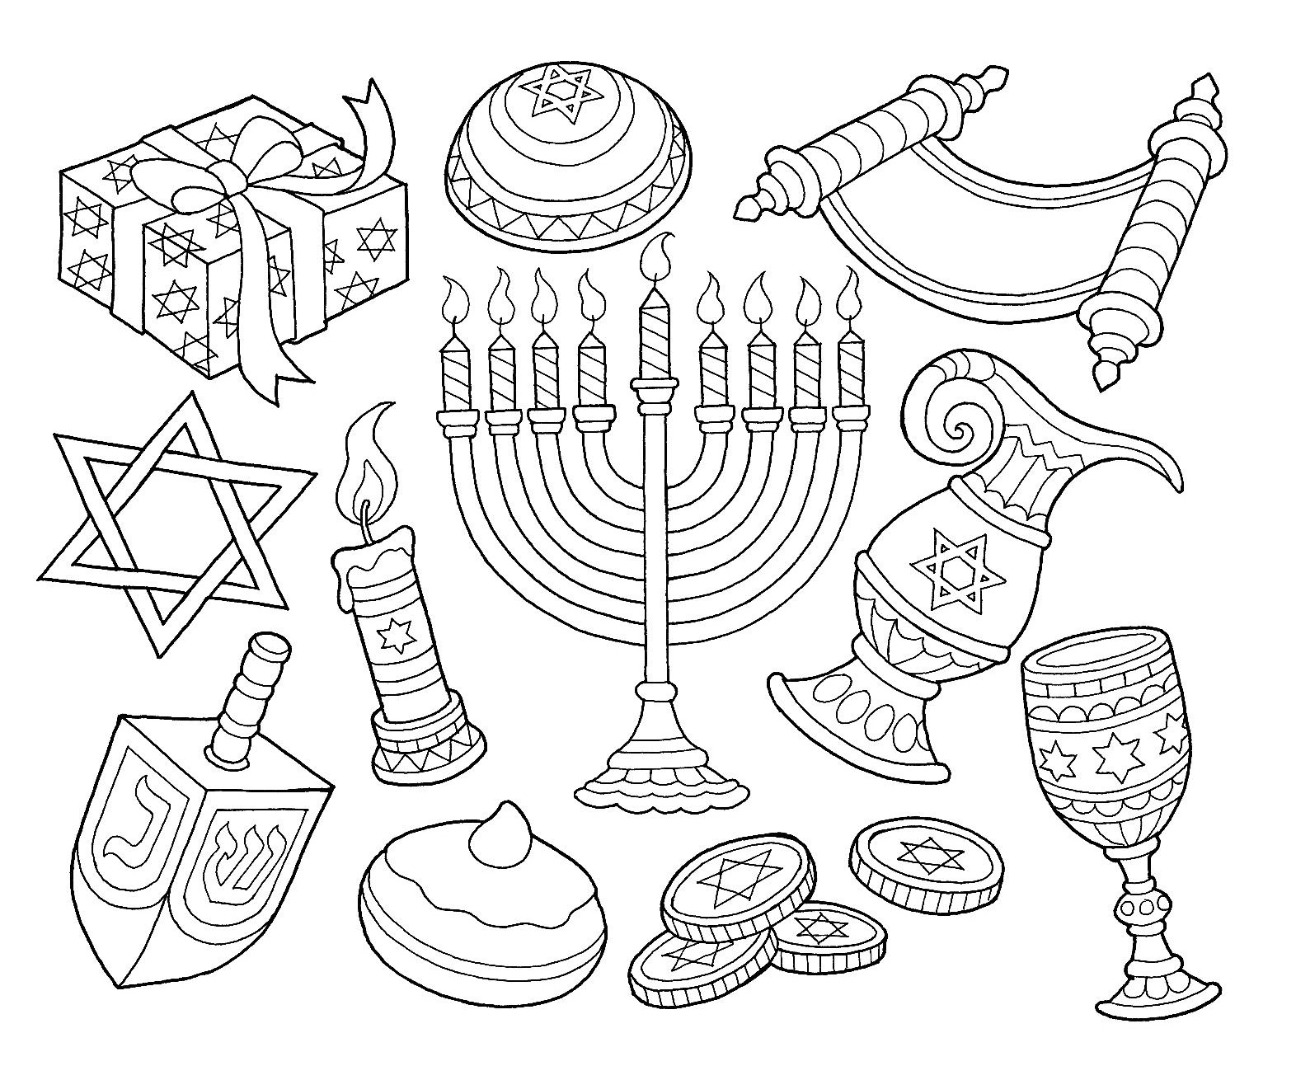 The Best Free Menorah Drawing Images Download From 50